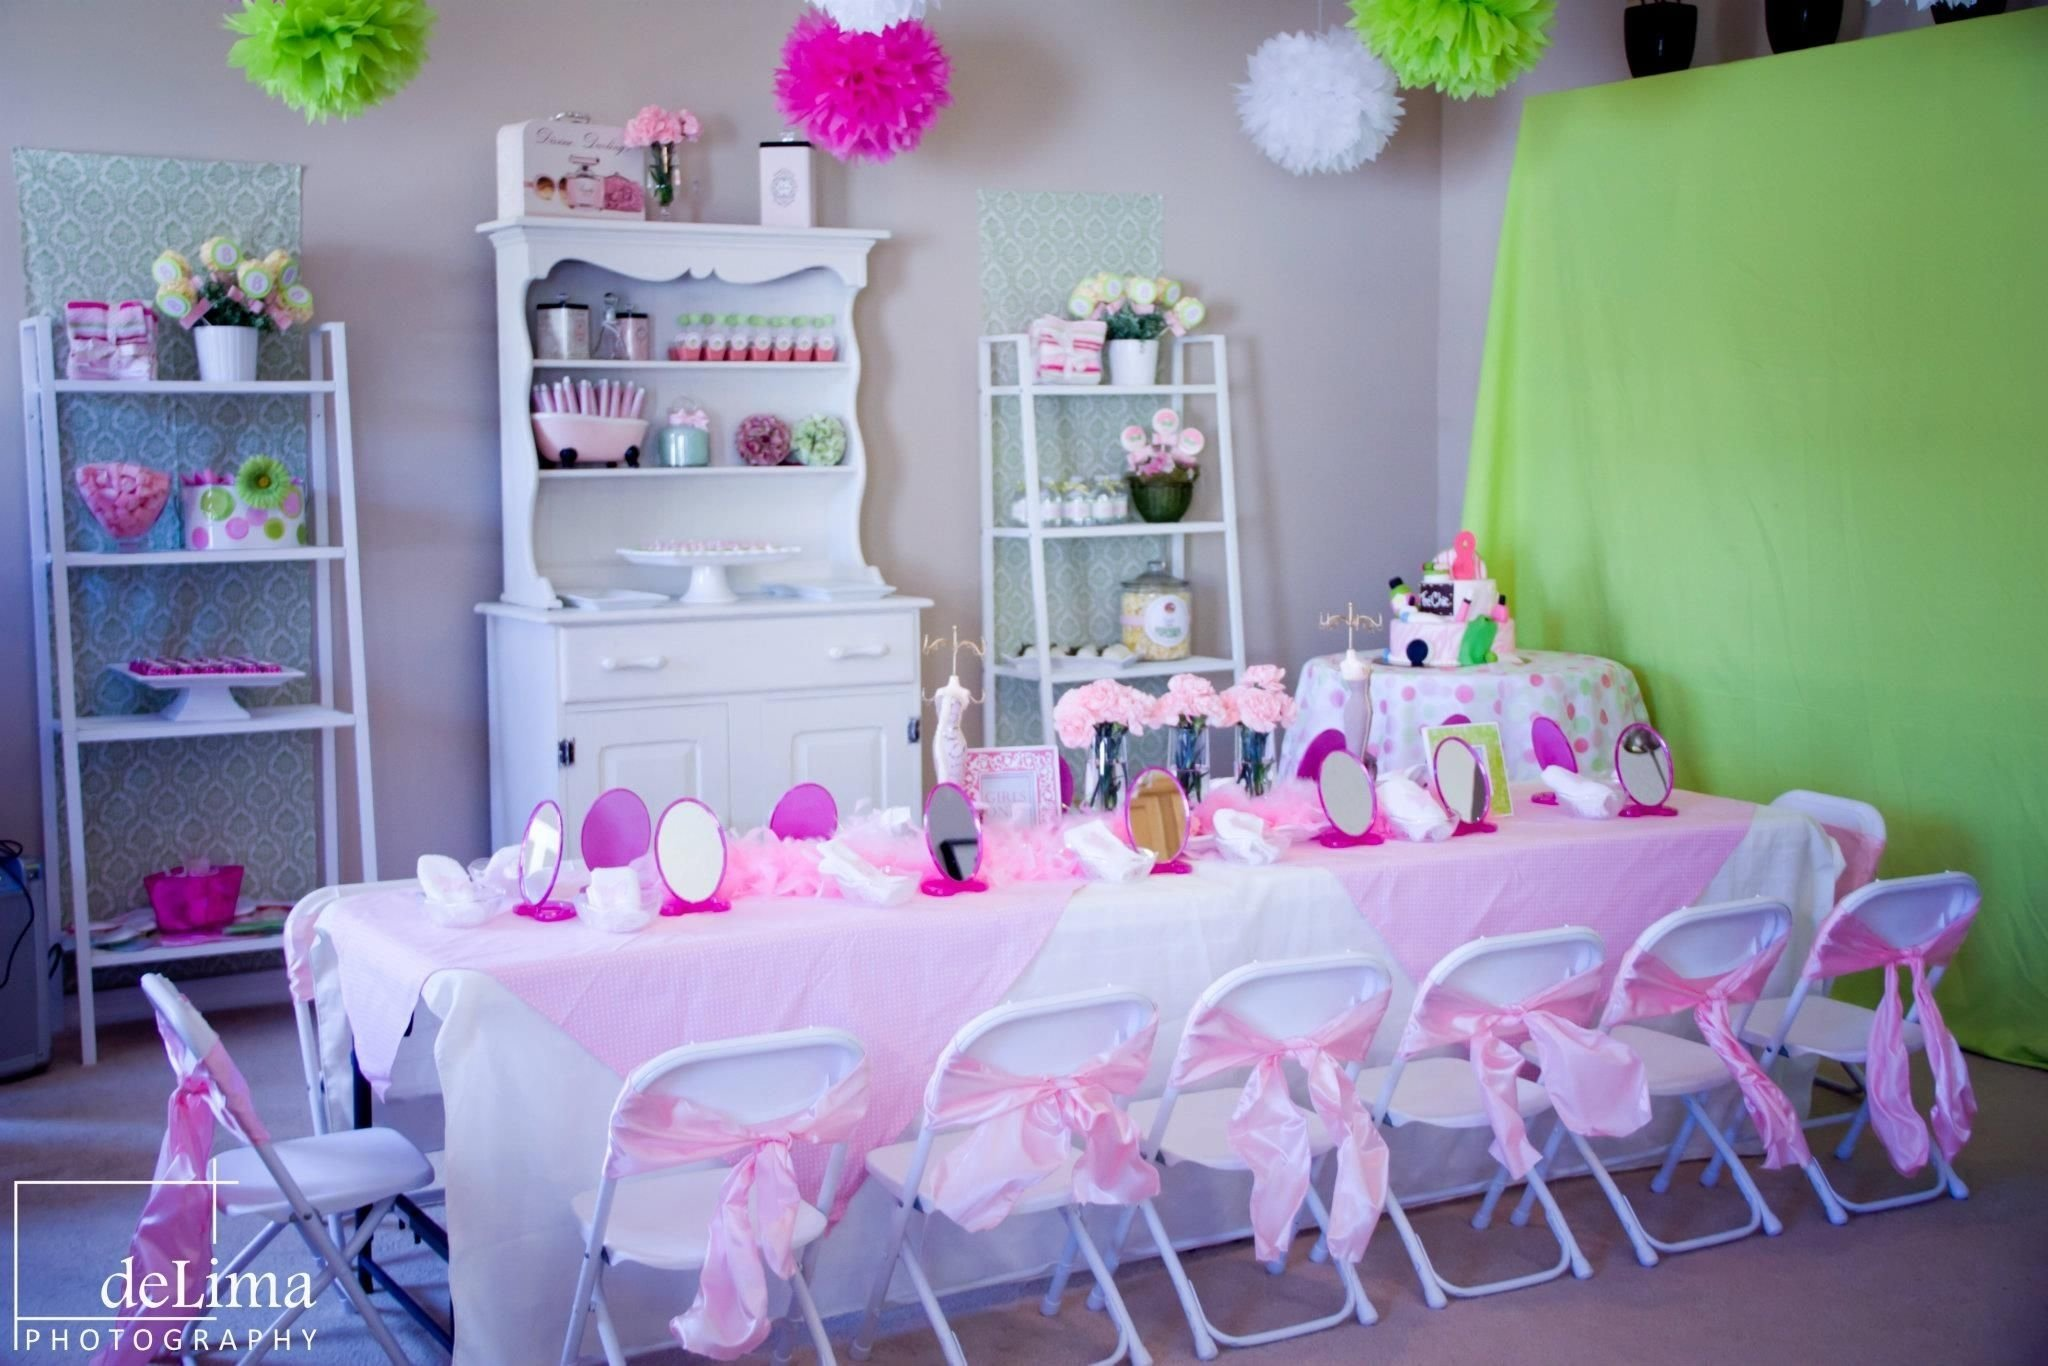 10 Gorgeous Spa Party Ideas For Girls super chic spa party spa party decorations spa party and spa 2021